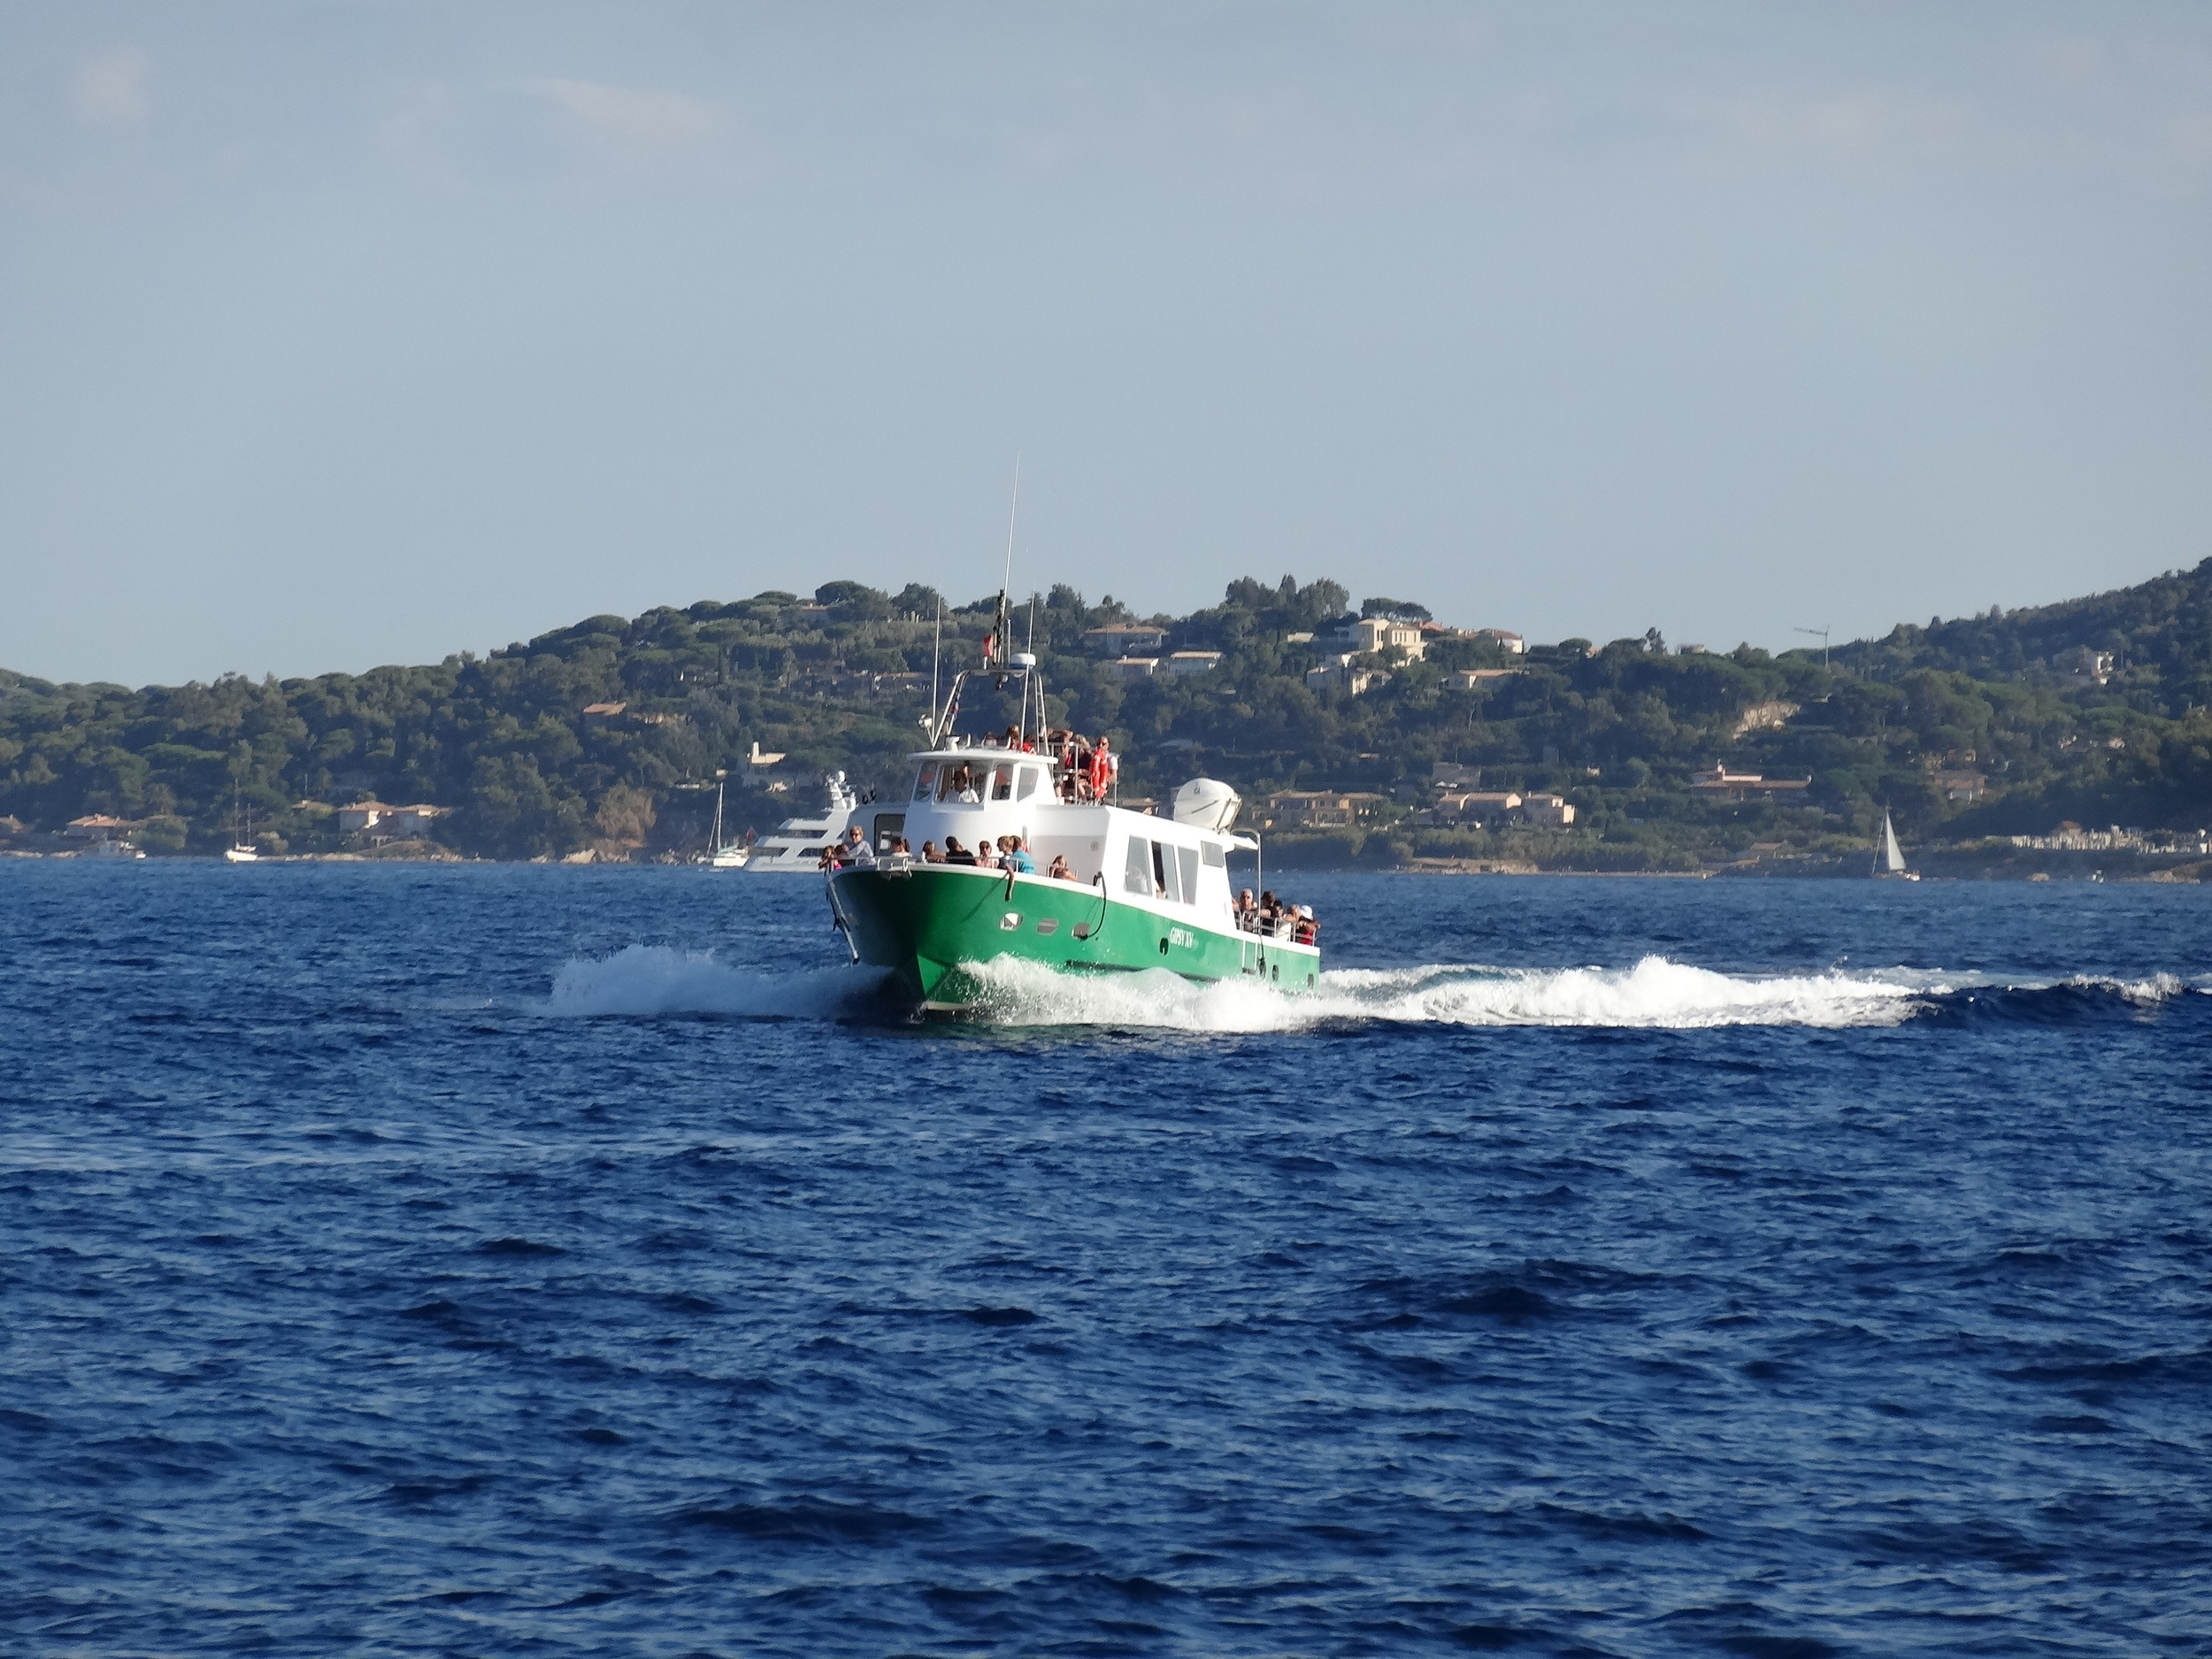 The Ste Maxime to St Tropez passenger ferry